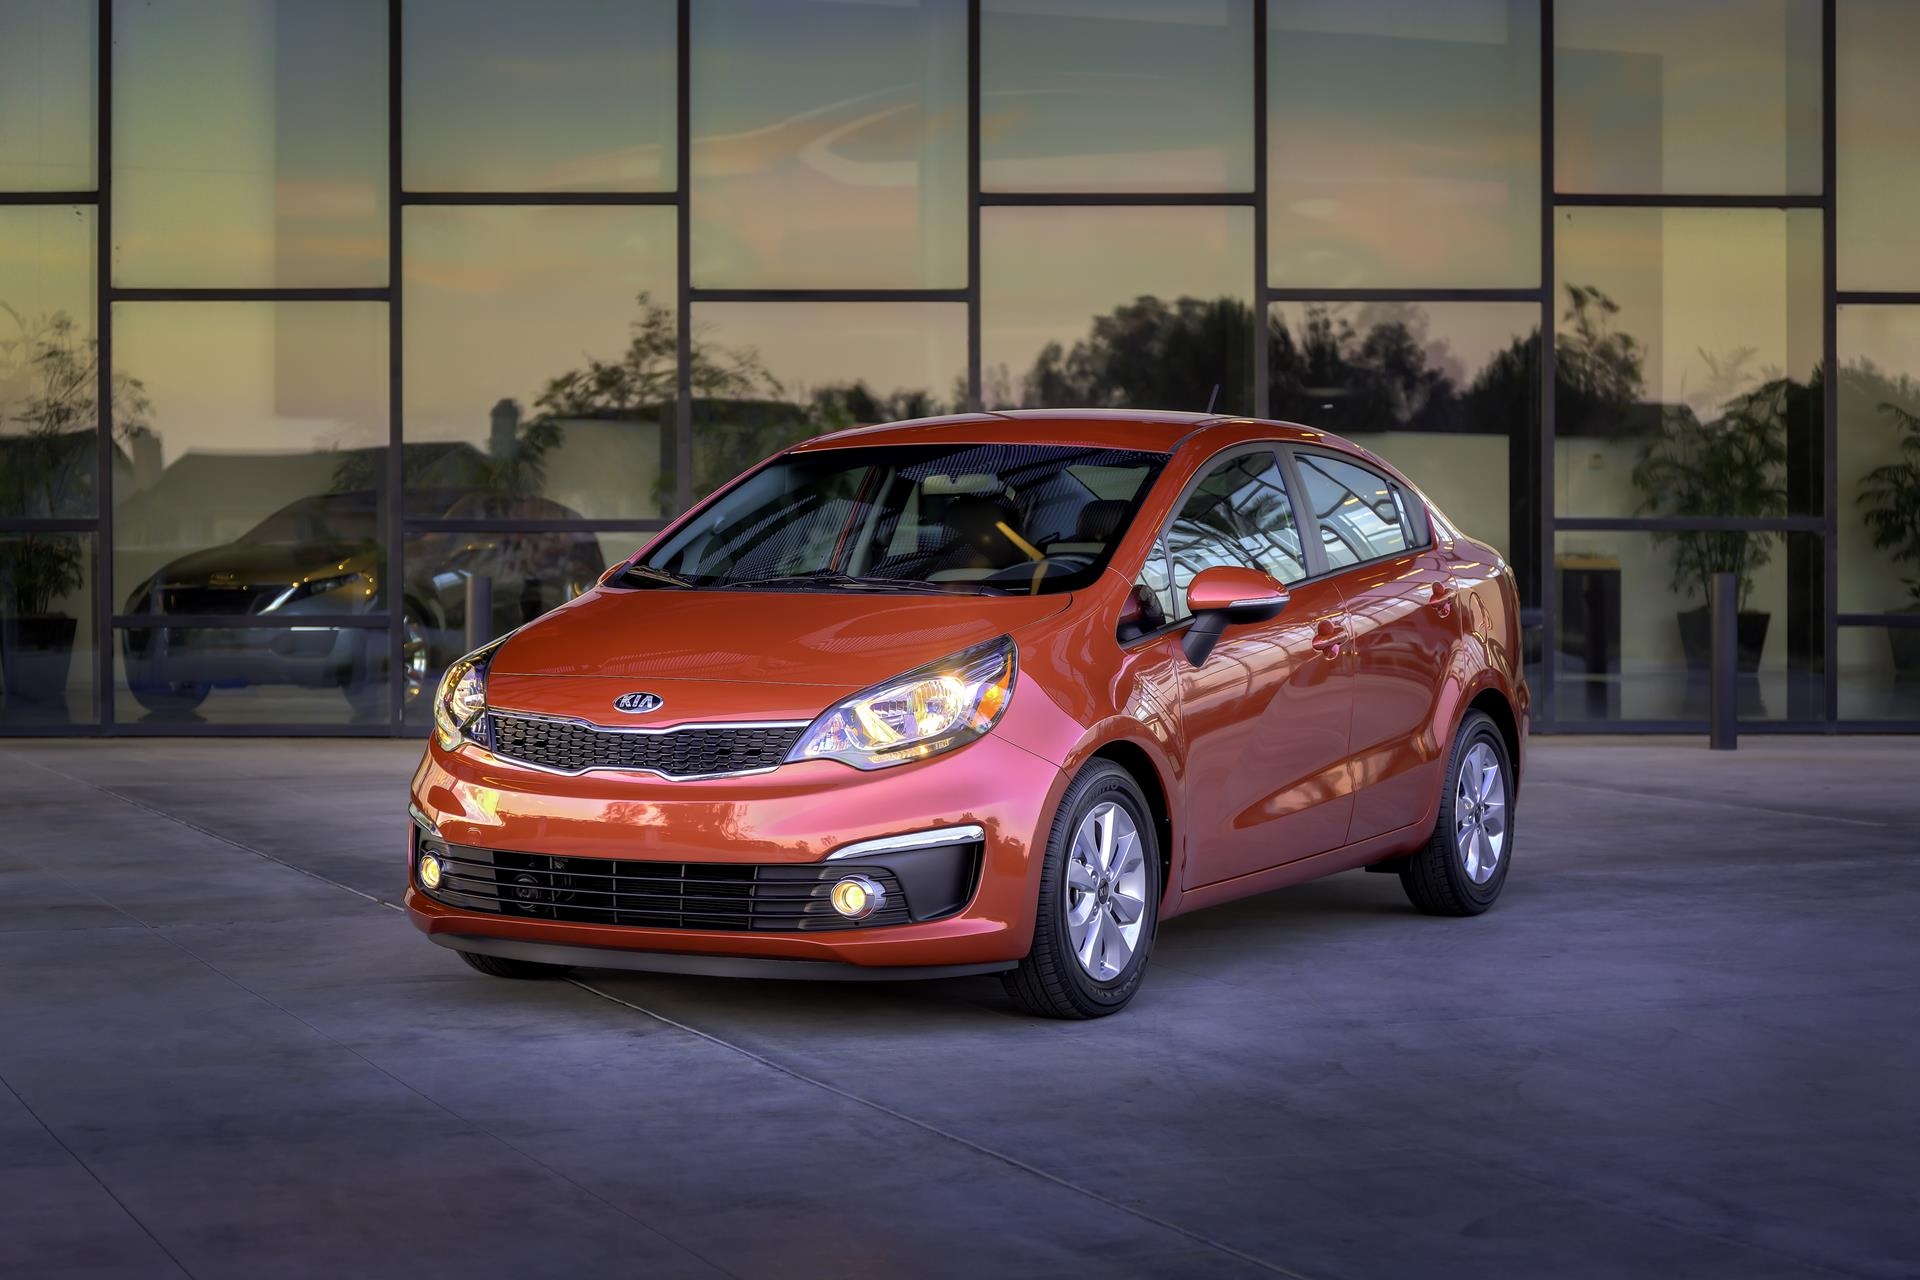 2016 kia rio news and information. Black Bedroom Furniture Sets. Home Design Ideas